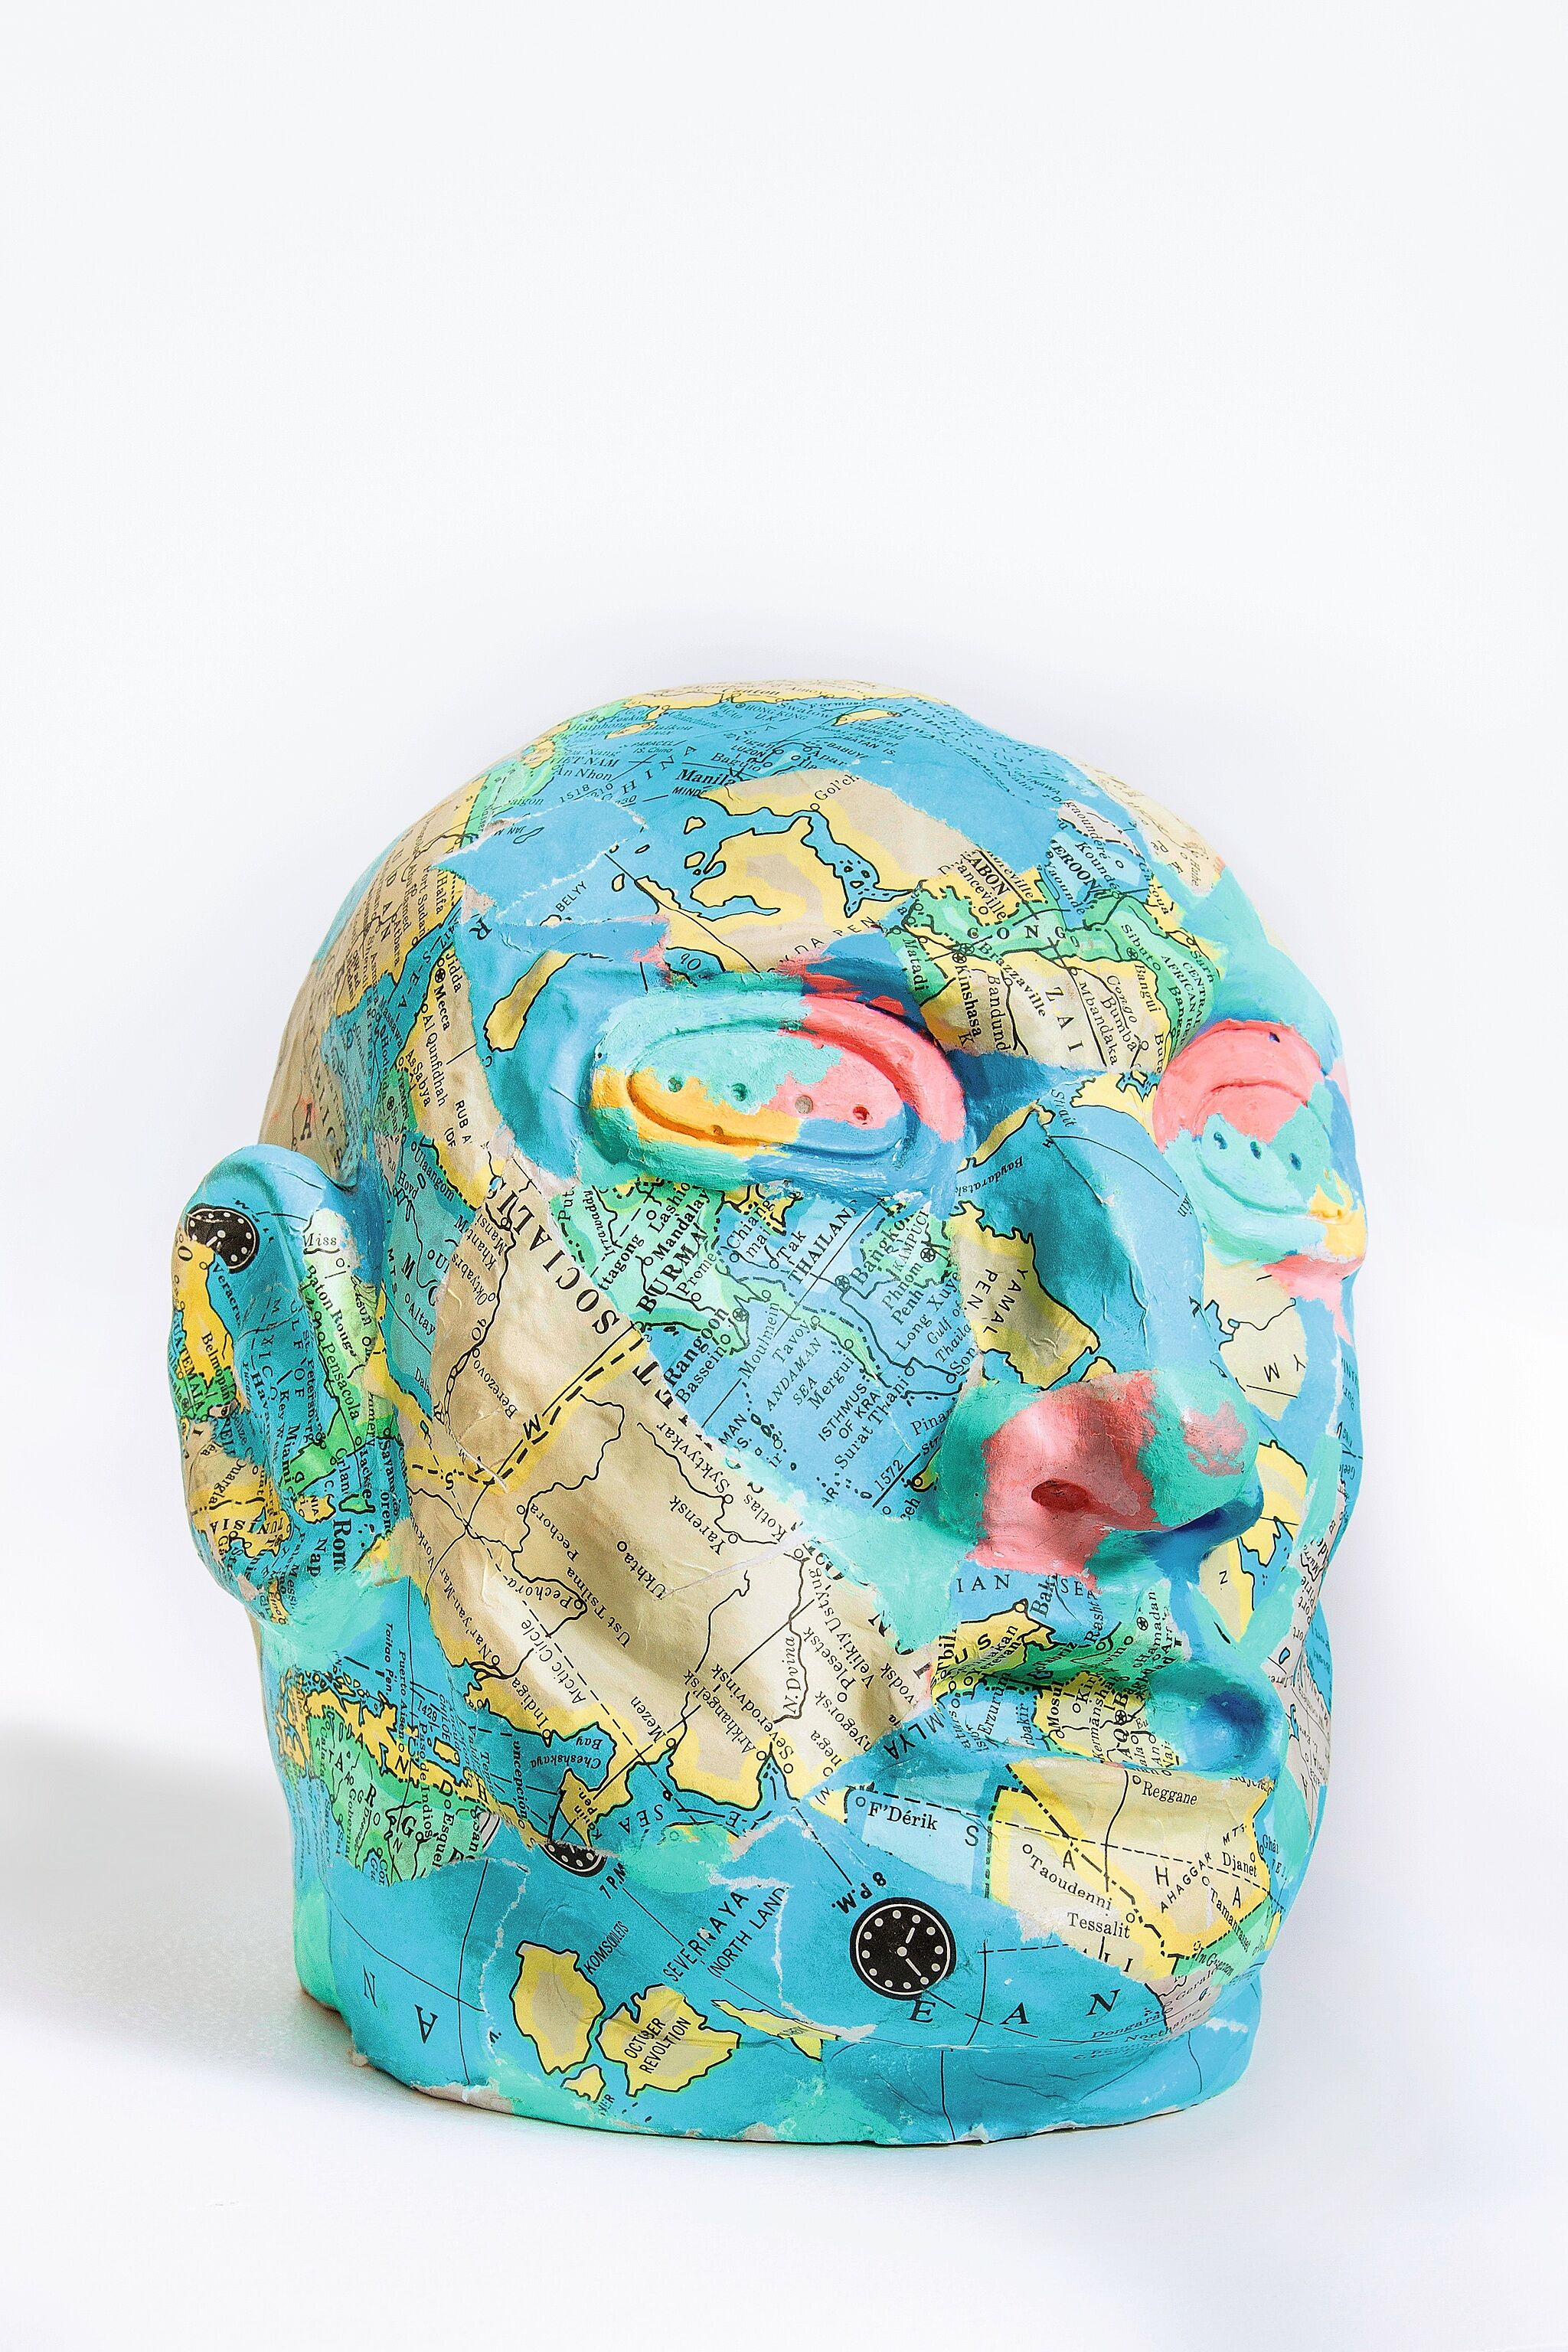 A sculpture of a head made out of maps.